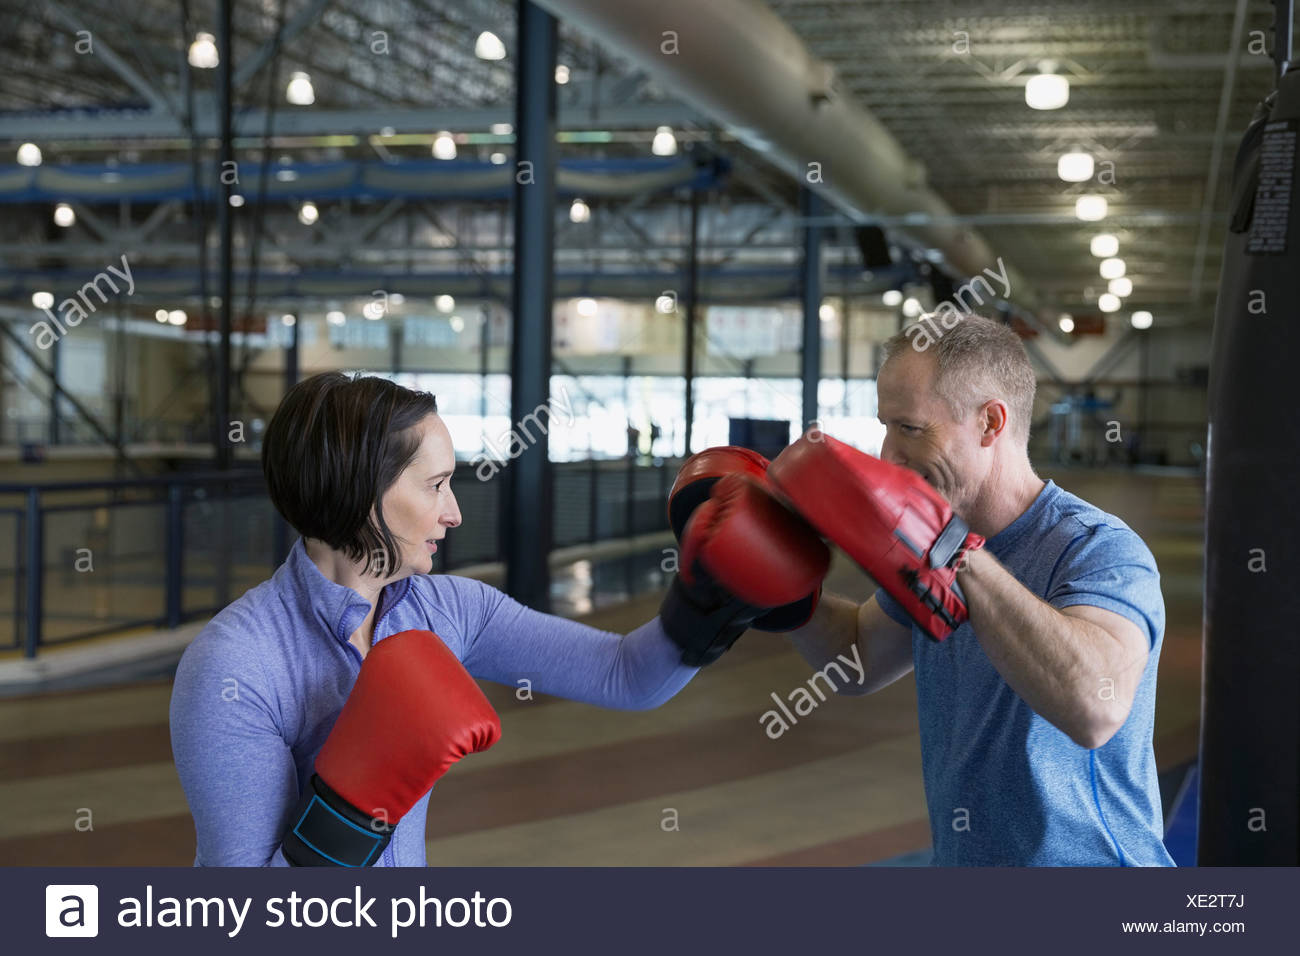 Woman boxing with personal trainer - Stock Image